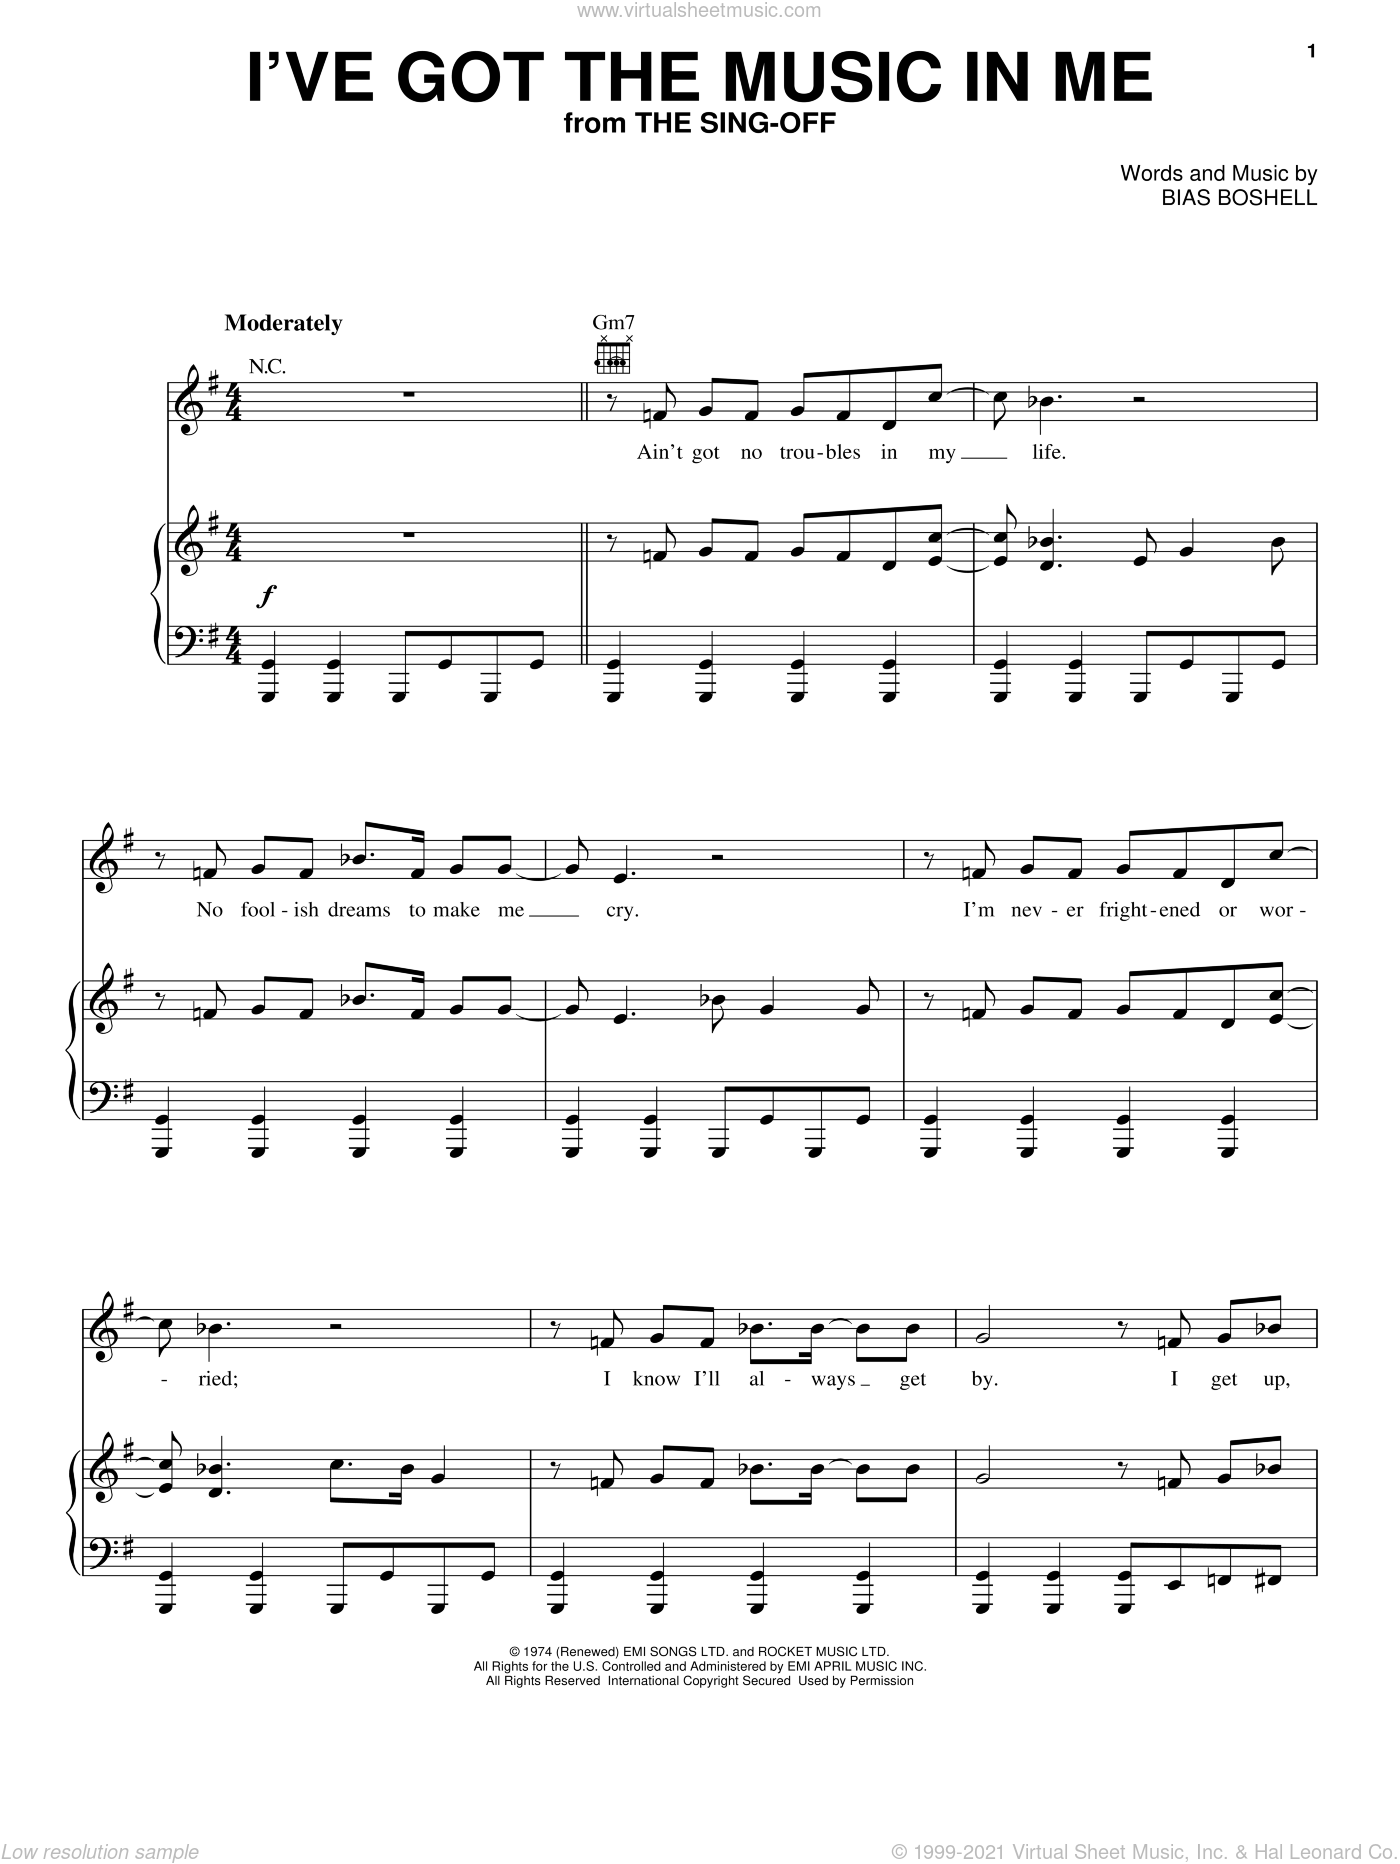 I've Got The Music In Me sheet music for voice, piano or guitar by Kiki Dee and Bias Boshell, intermediate skill level